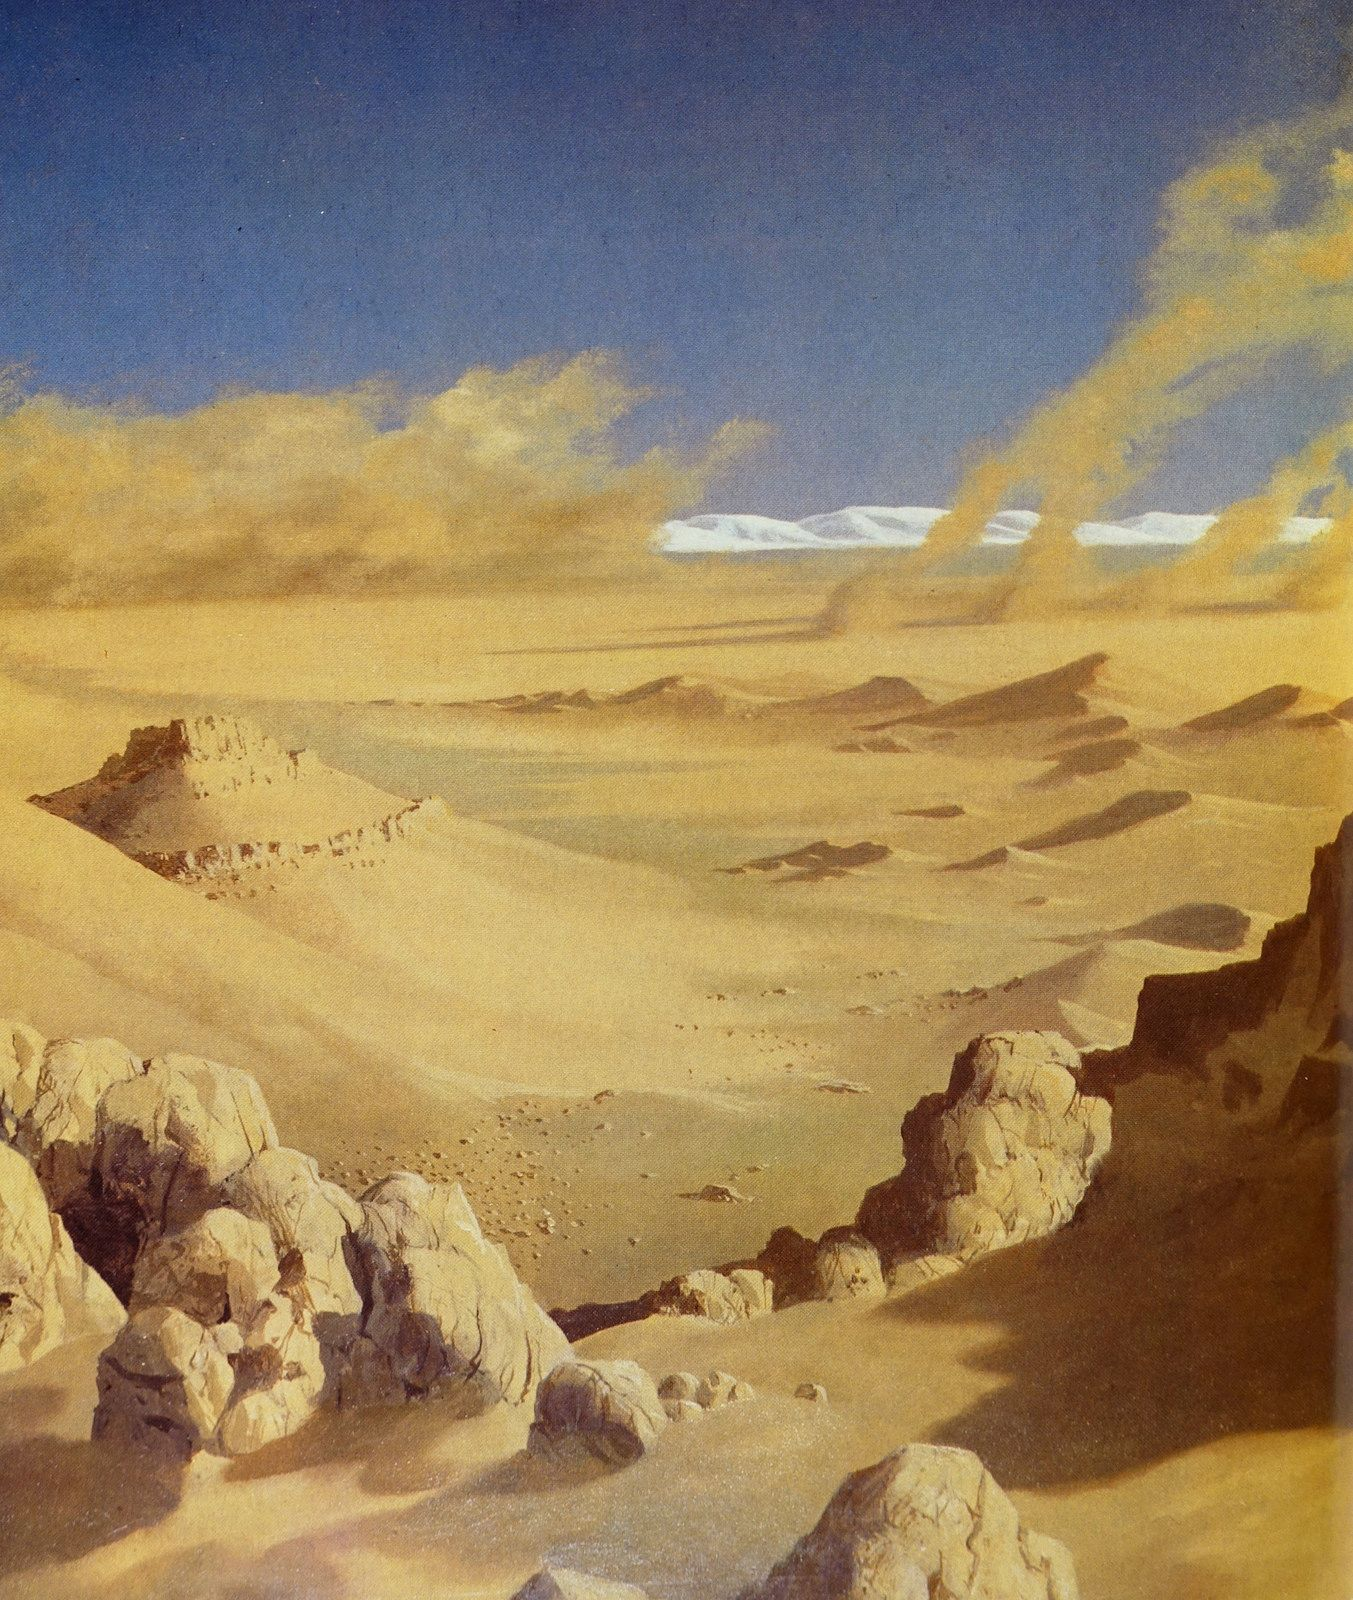 chesley bonestell mars - Google Search